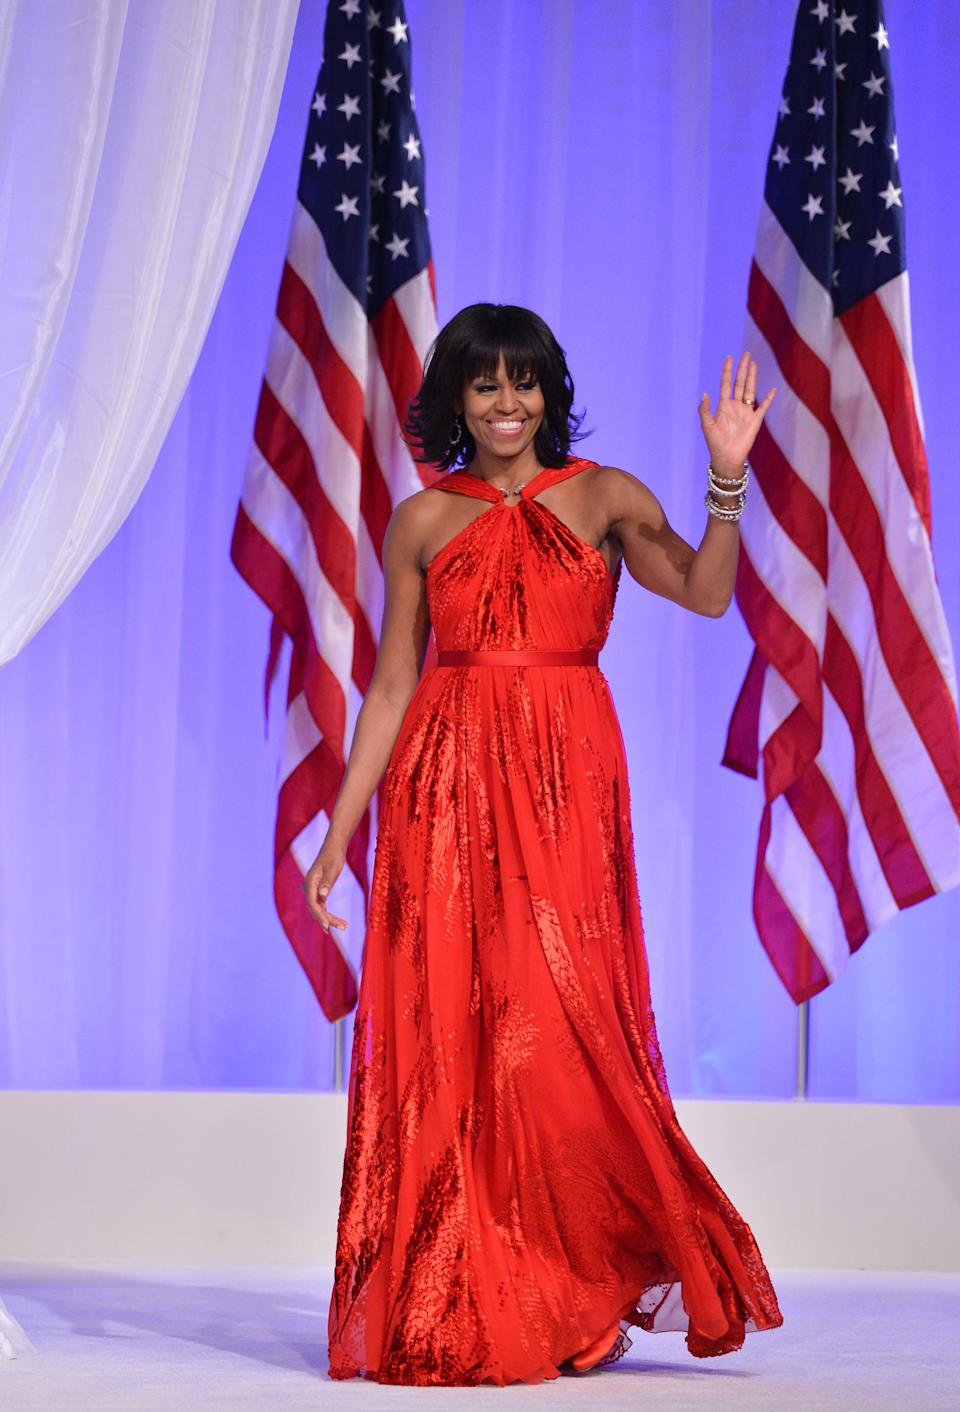 Michelle Obama wearing Jason Wu to the 2013 Inaugural BallAFP via Getty Images